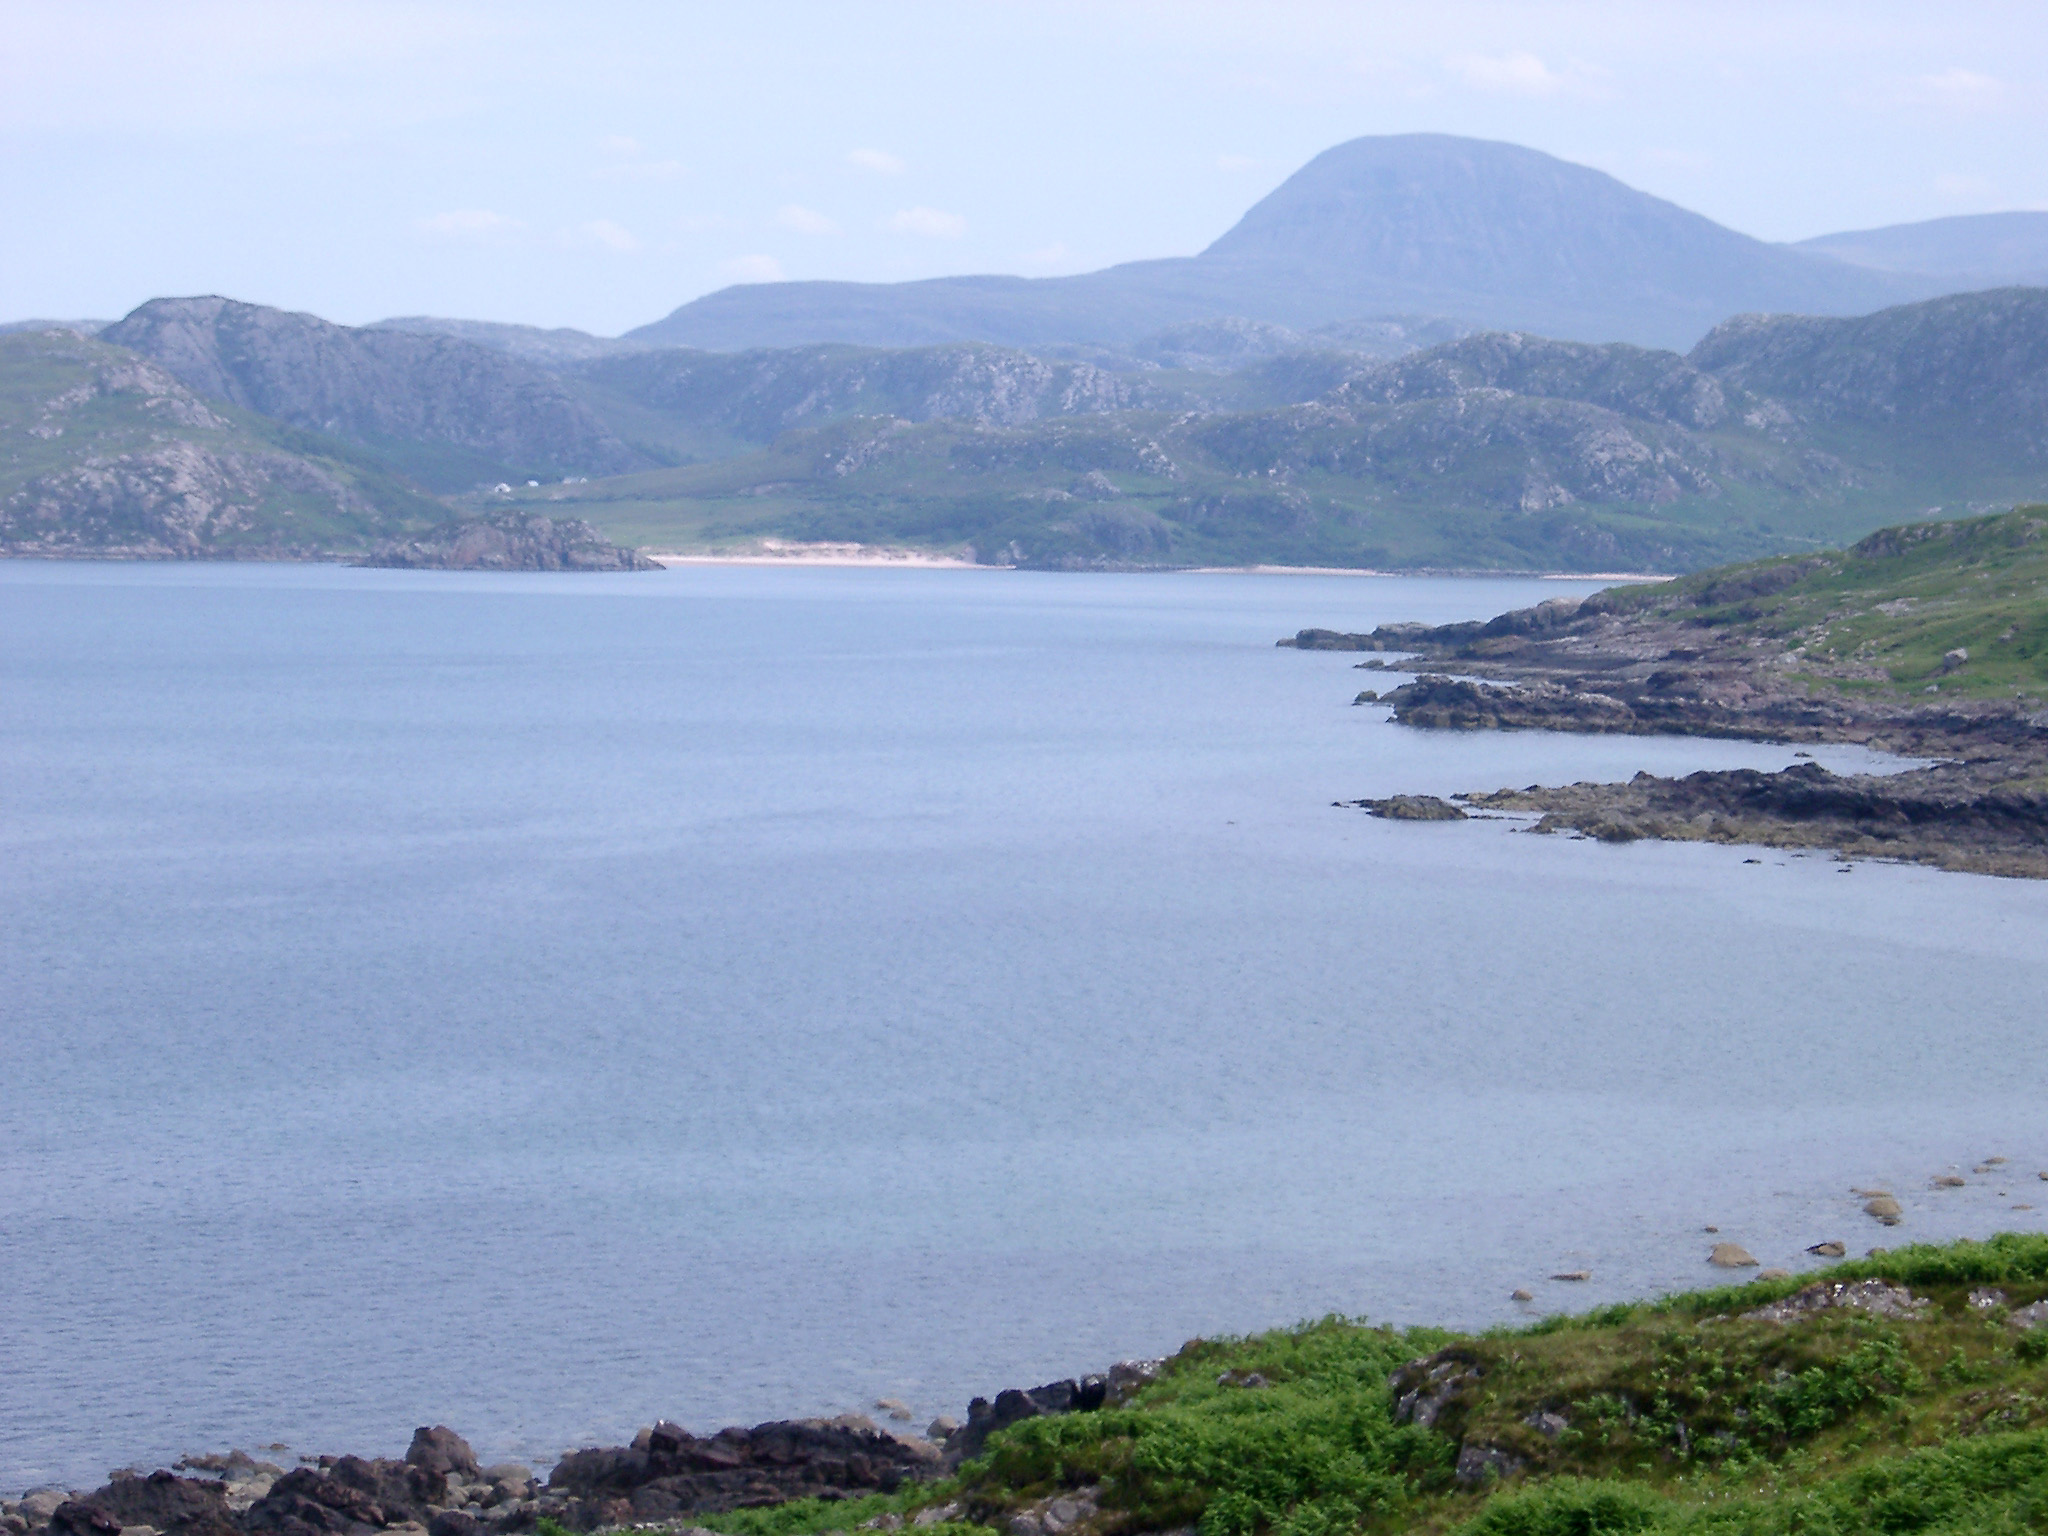 Scenic view of a loch in Scotland with inlets, bays and a golden beach backed by rugged mountains on a misty day